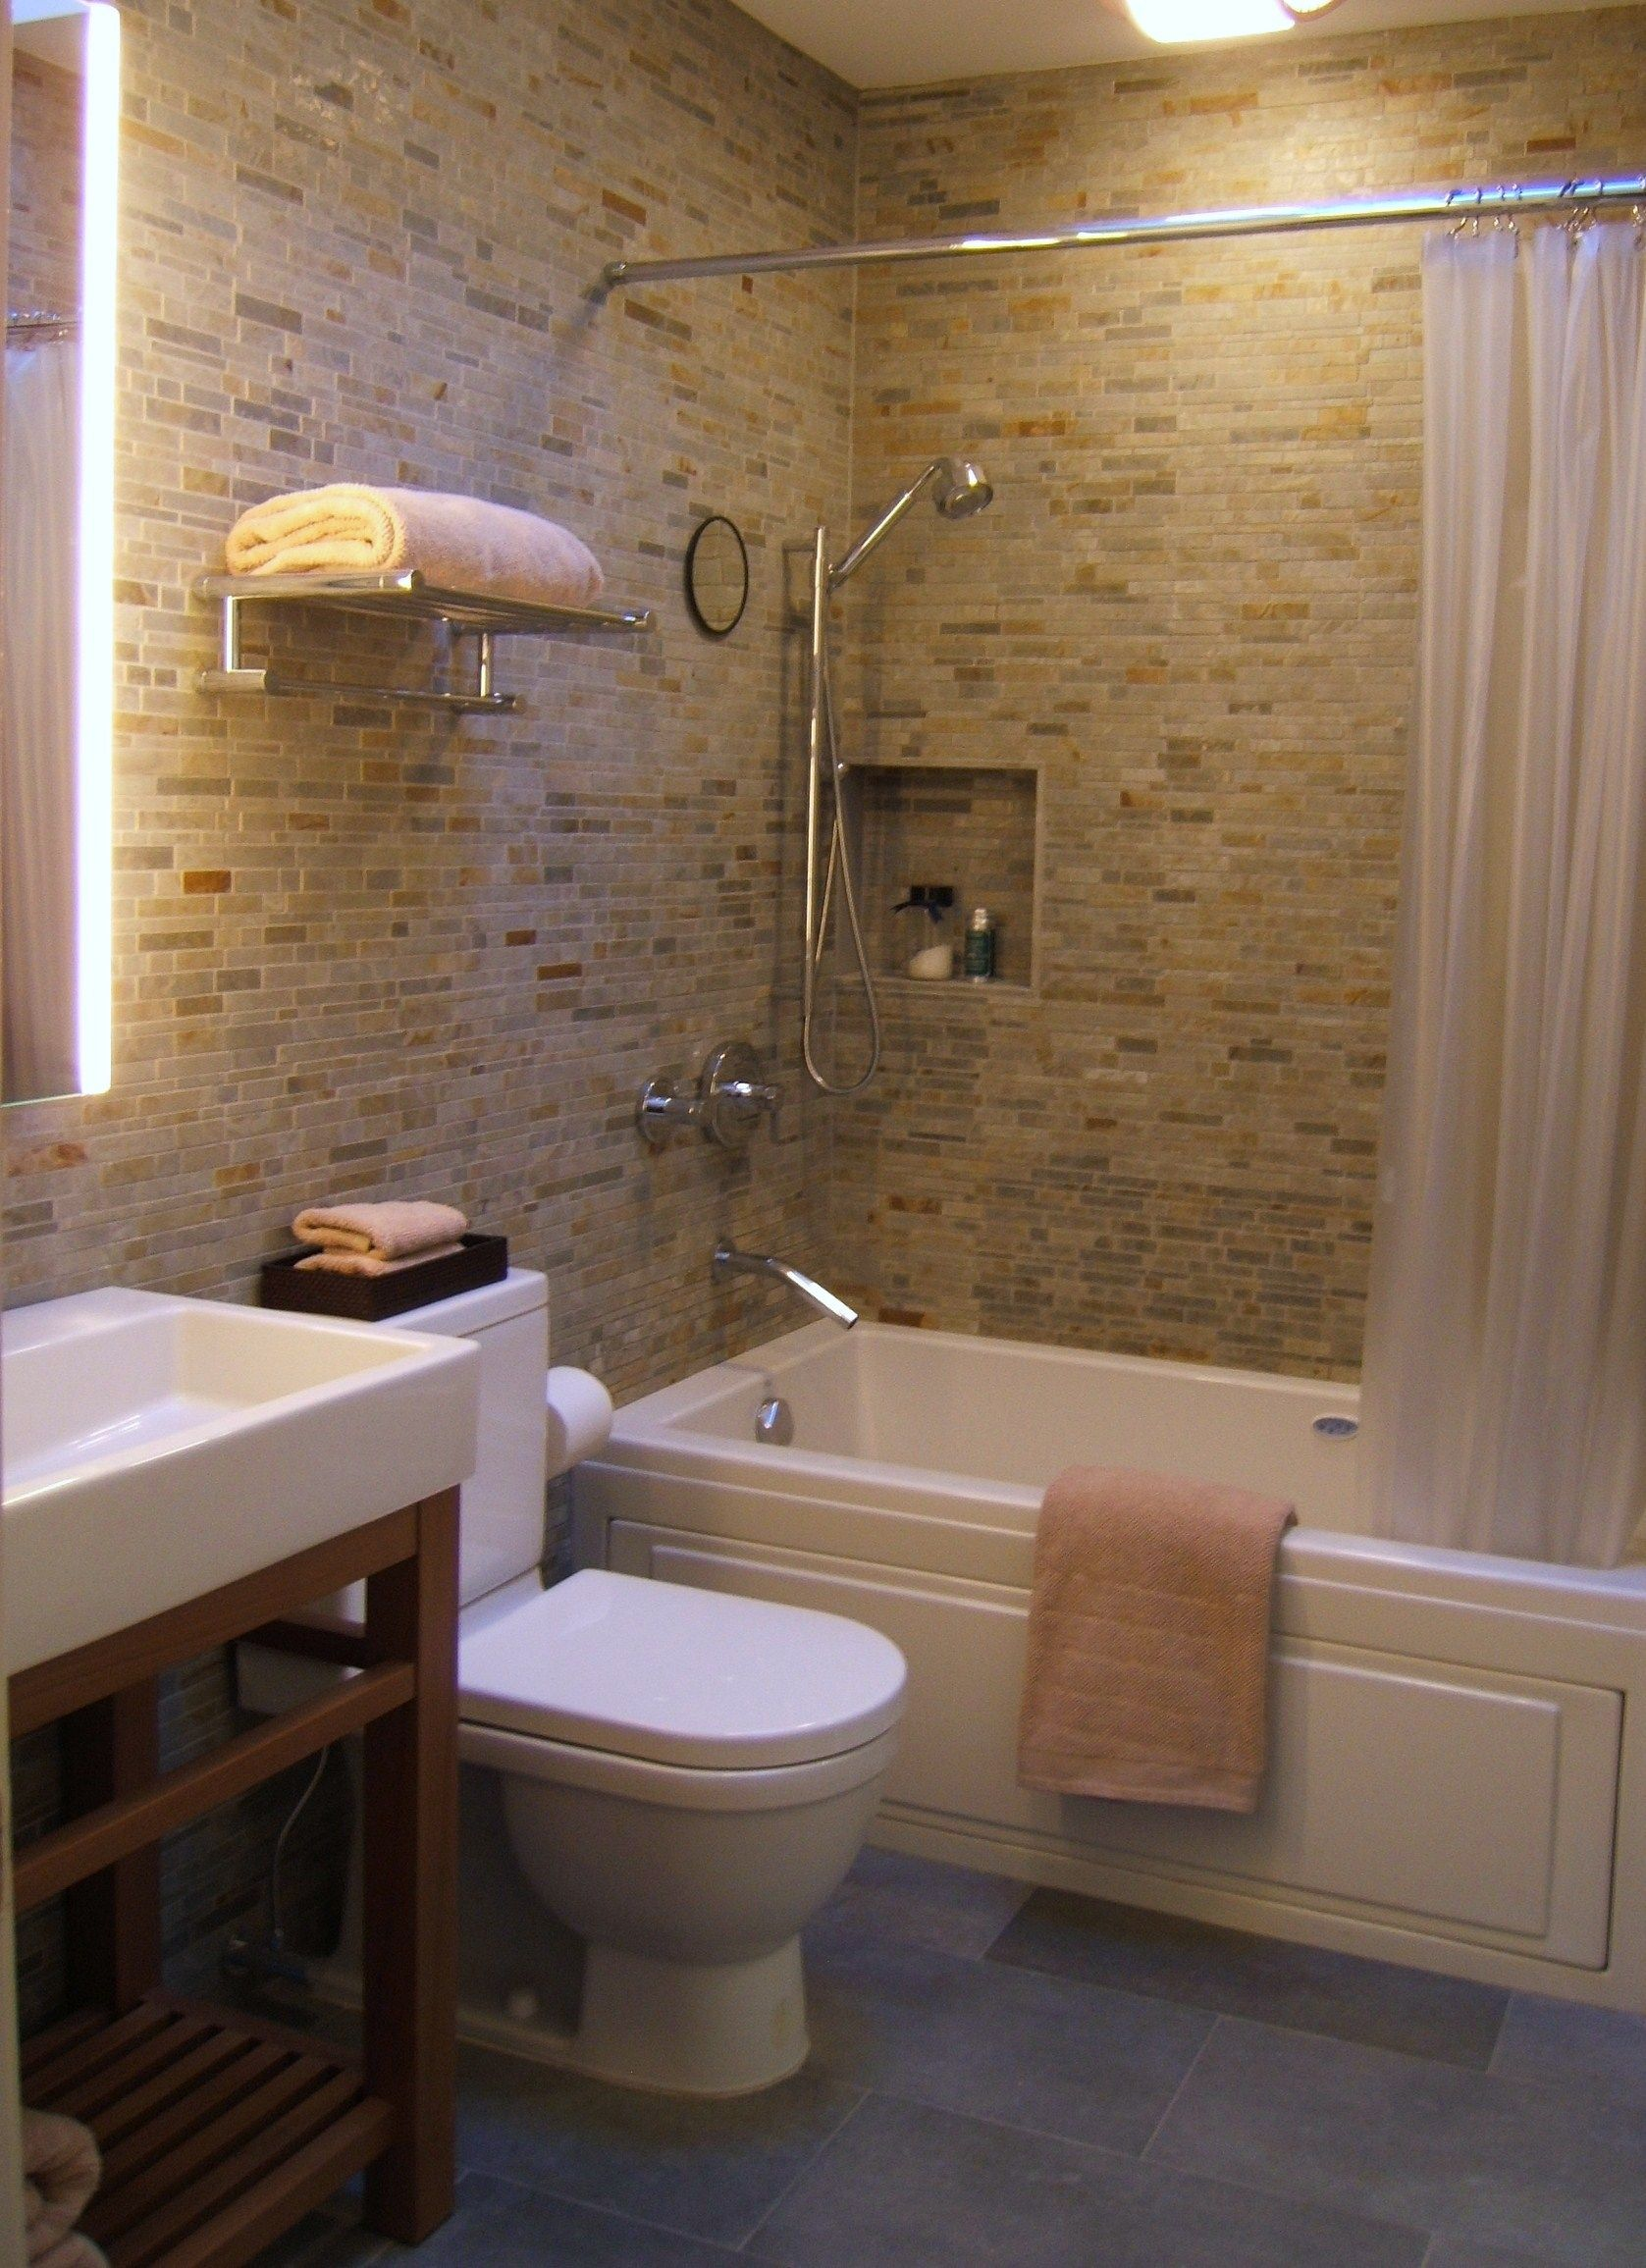 Small bathroom designs south africa small bath for Best small bathroom layout